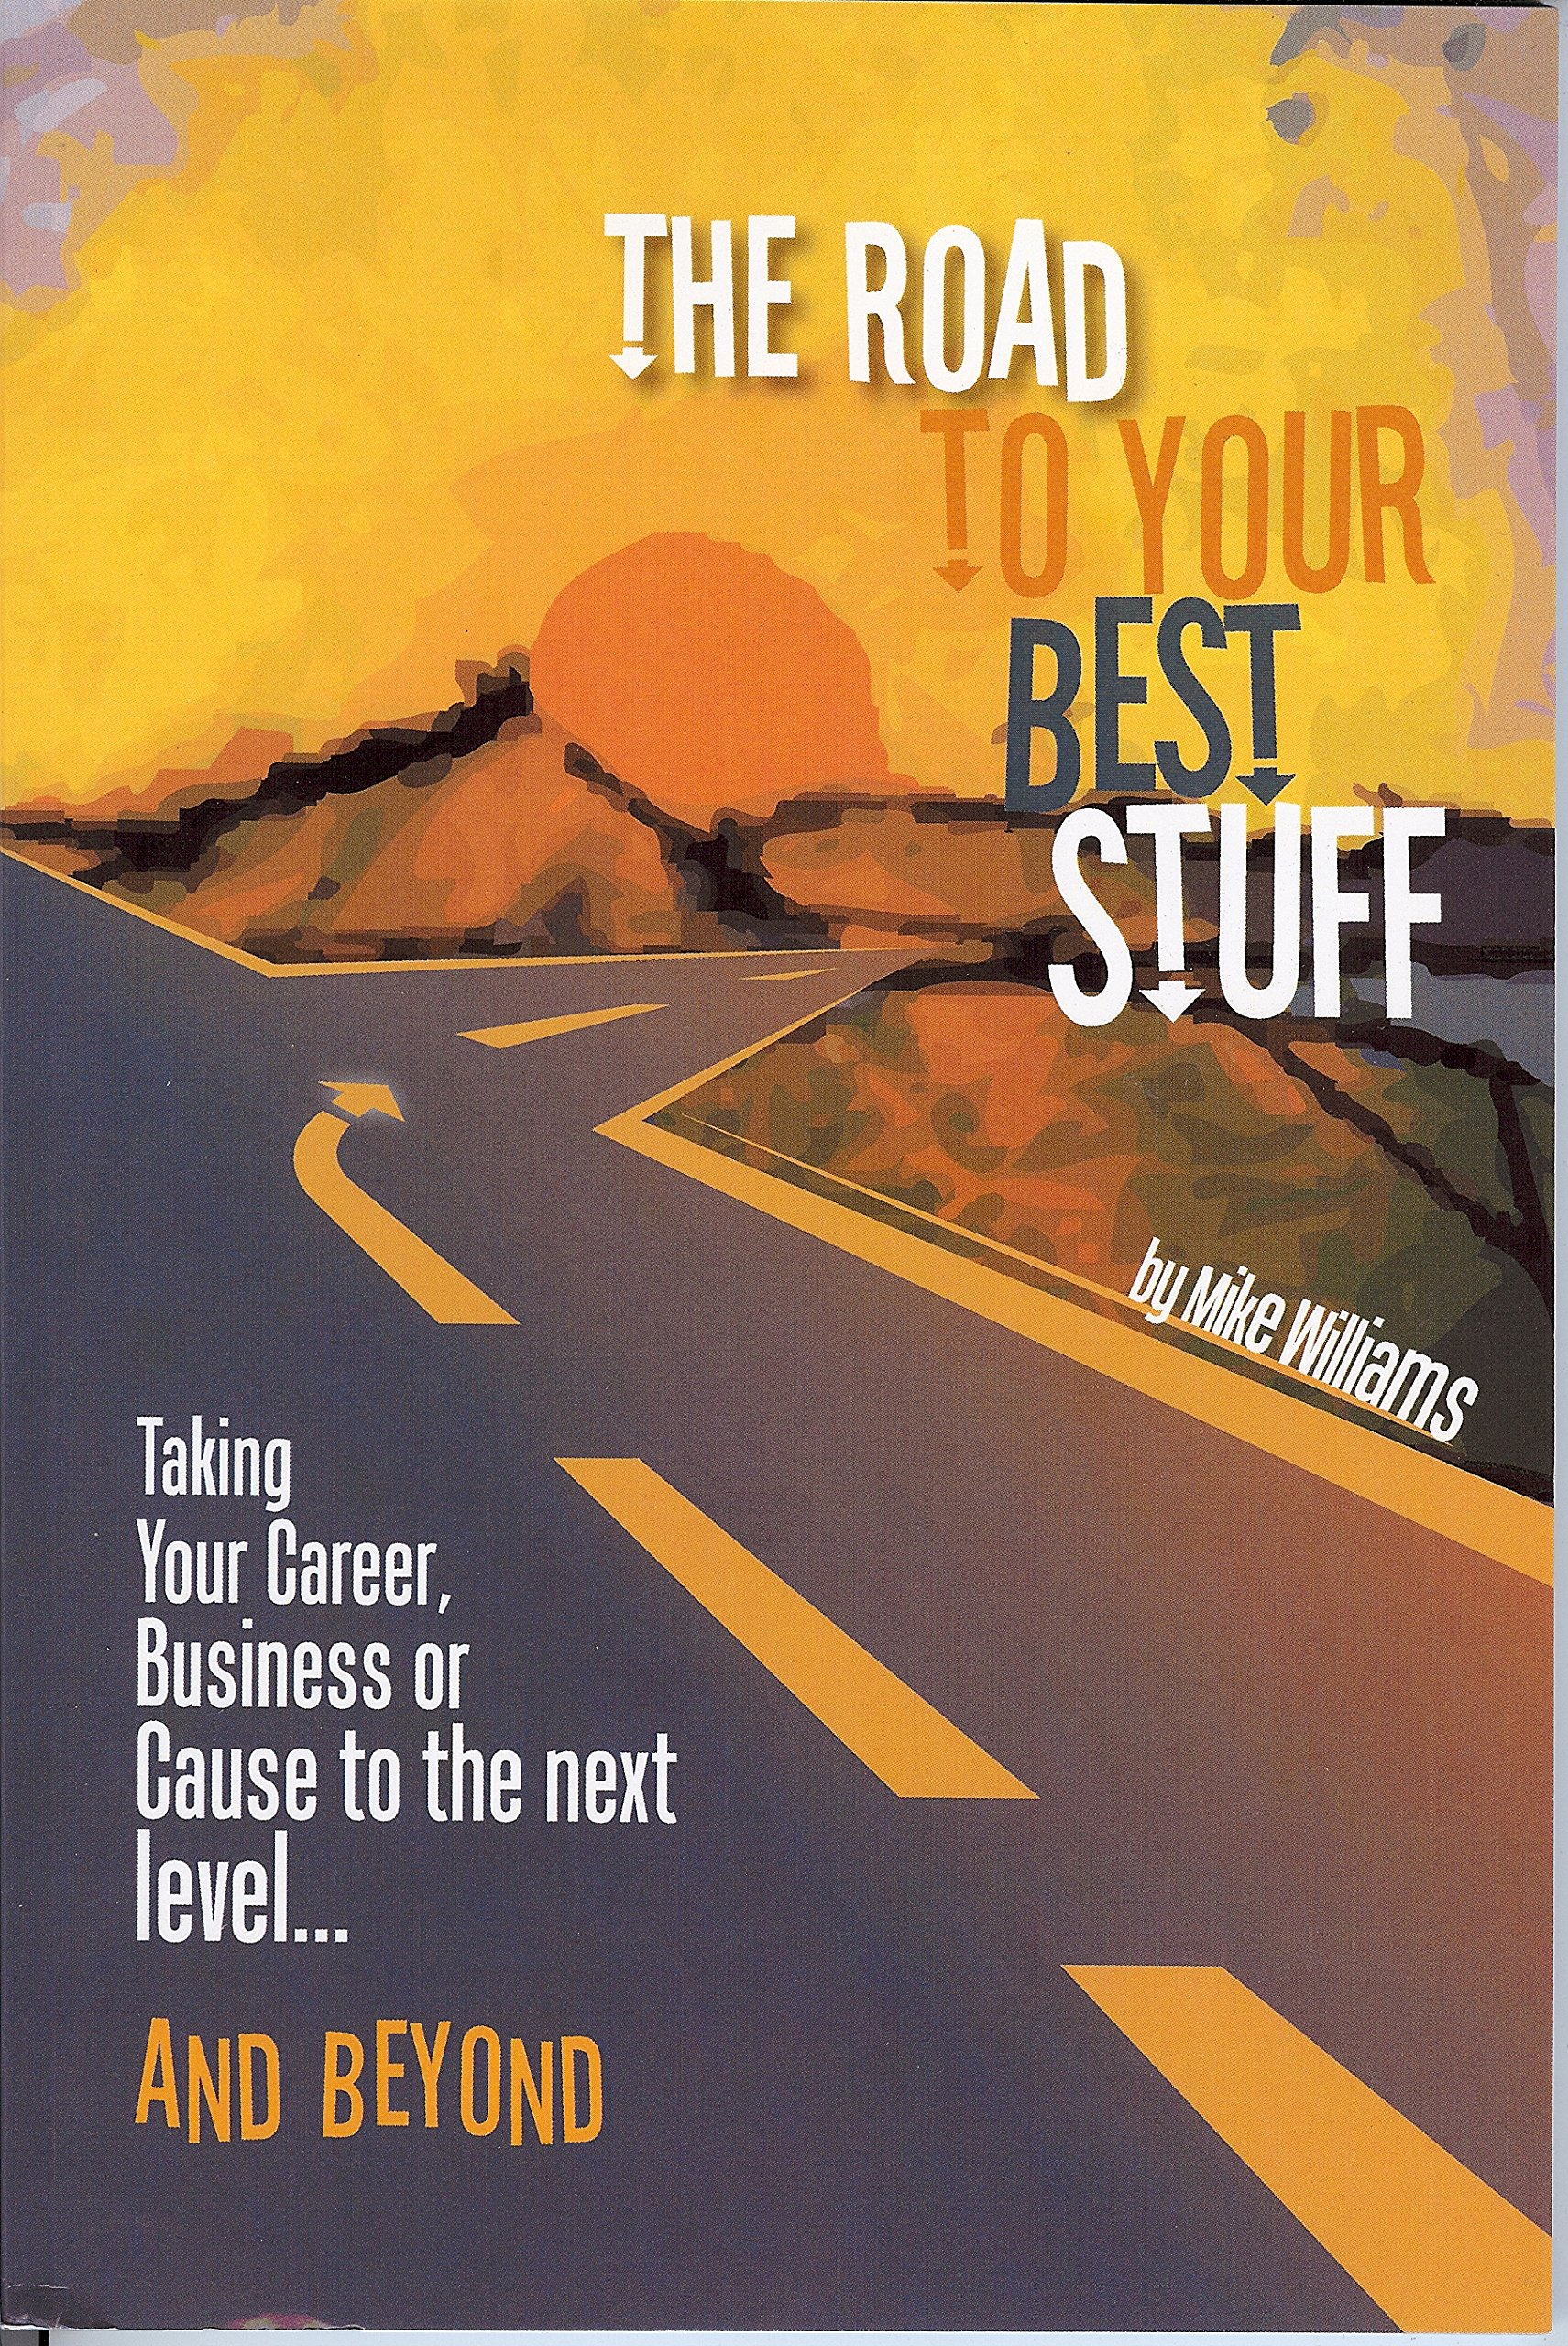 Image OfThe Road To Your Best Stuff: Taking Your Career, Business Or Cause To The Next Level And Beyond